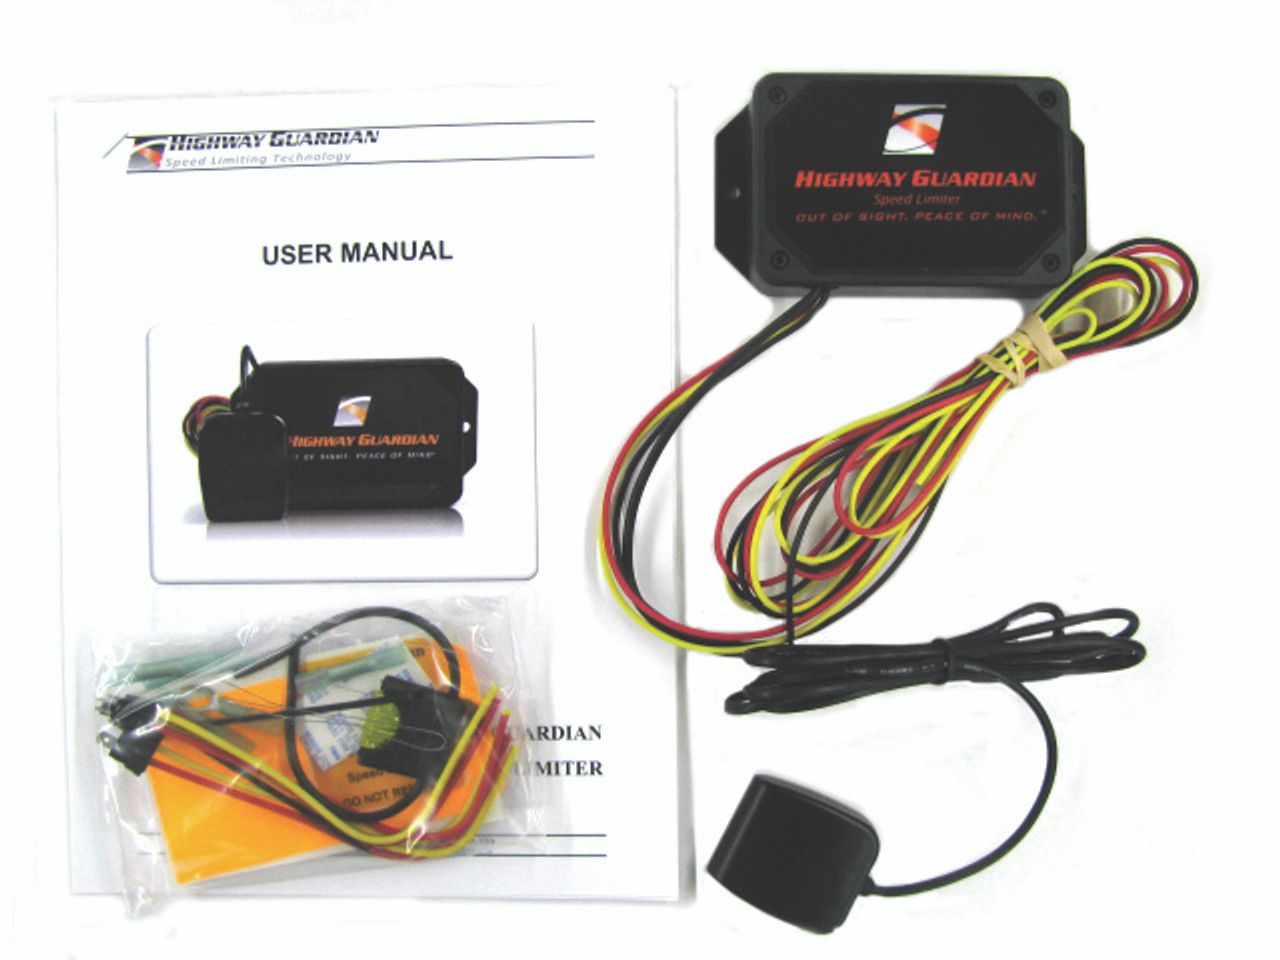 Highway Guardian Vehicle Speed Limiter - HG101